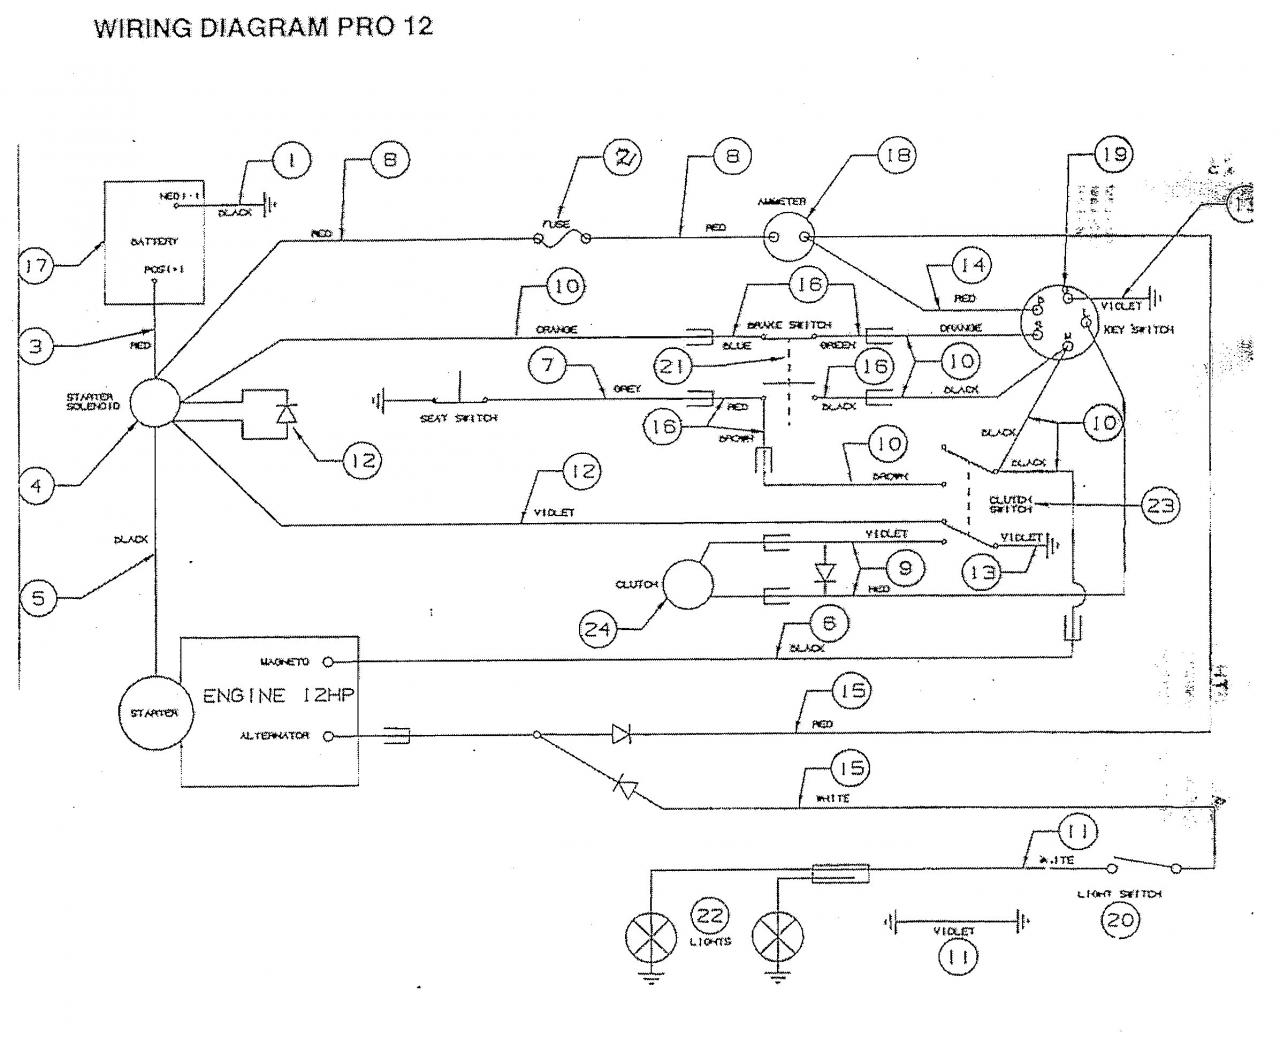 hight resolution of full 2772 9190 victa pro 12 wiring 16 hp briggs and stratton wiring diagram vanguard 18